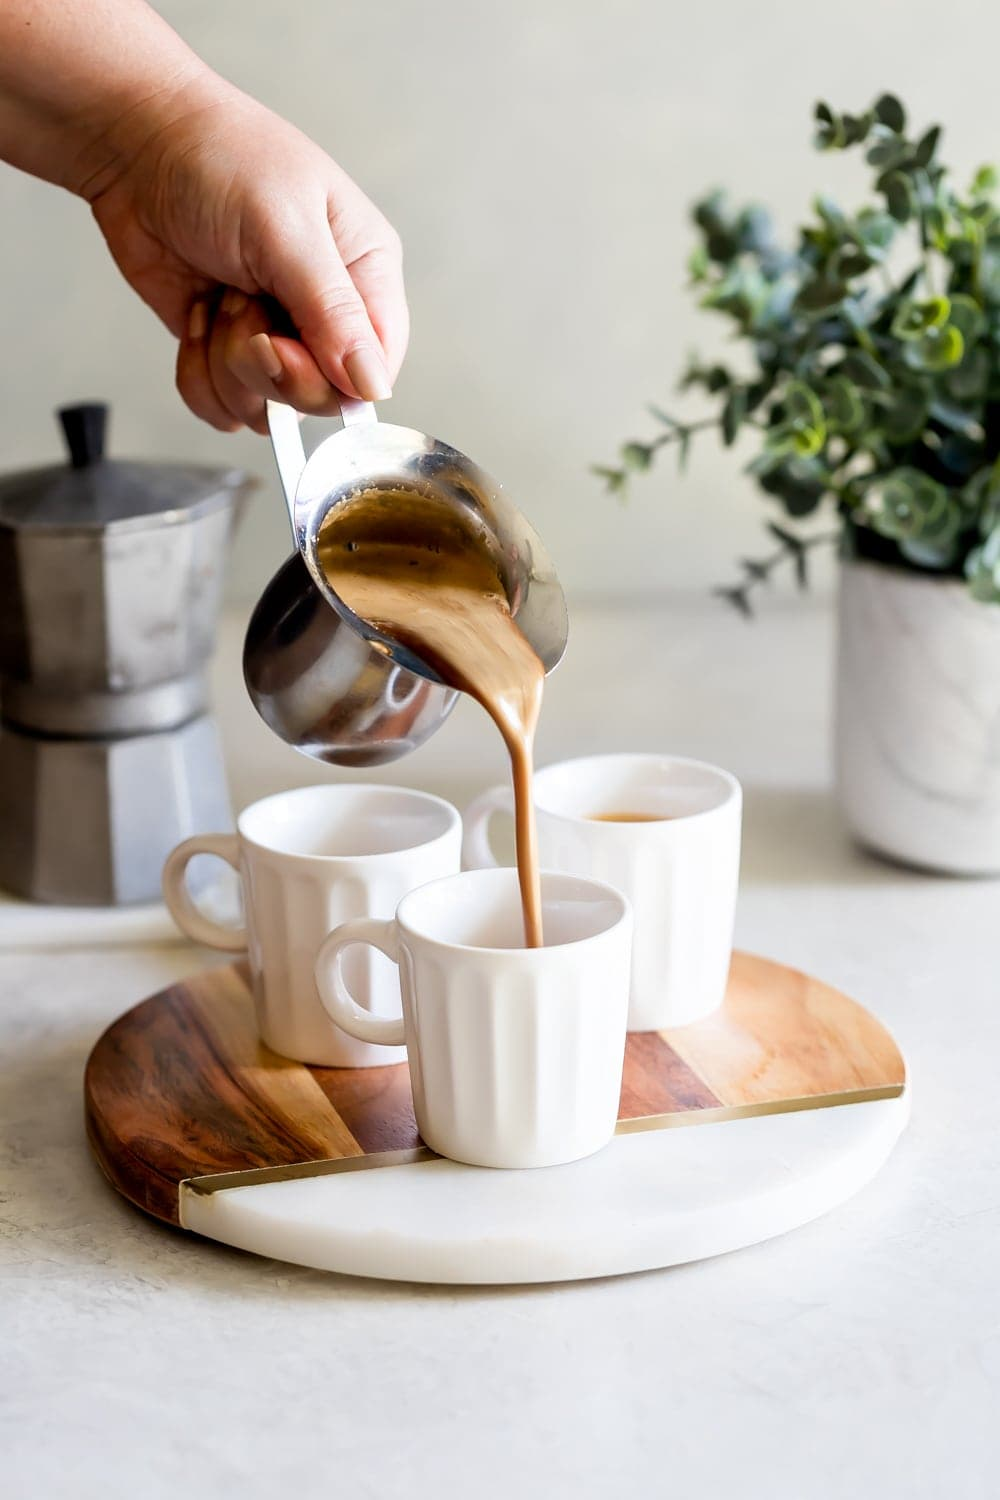 cuban coffee being poured into a espresso cups